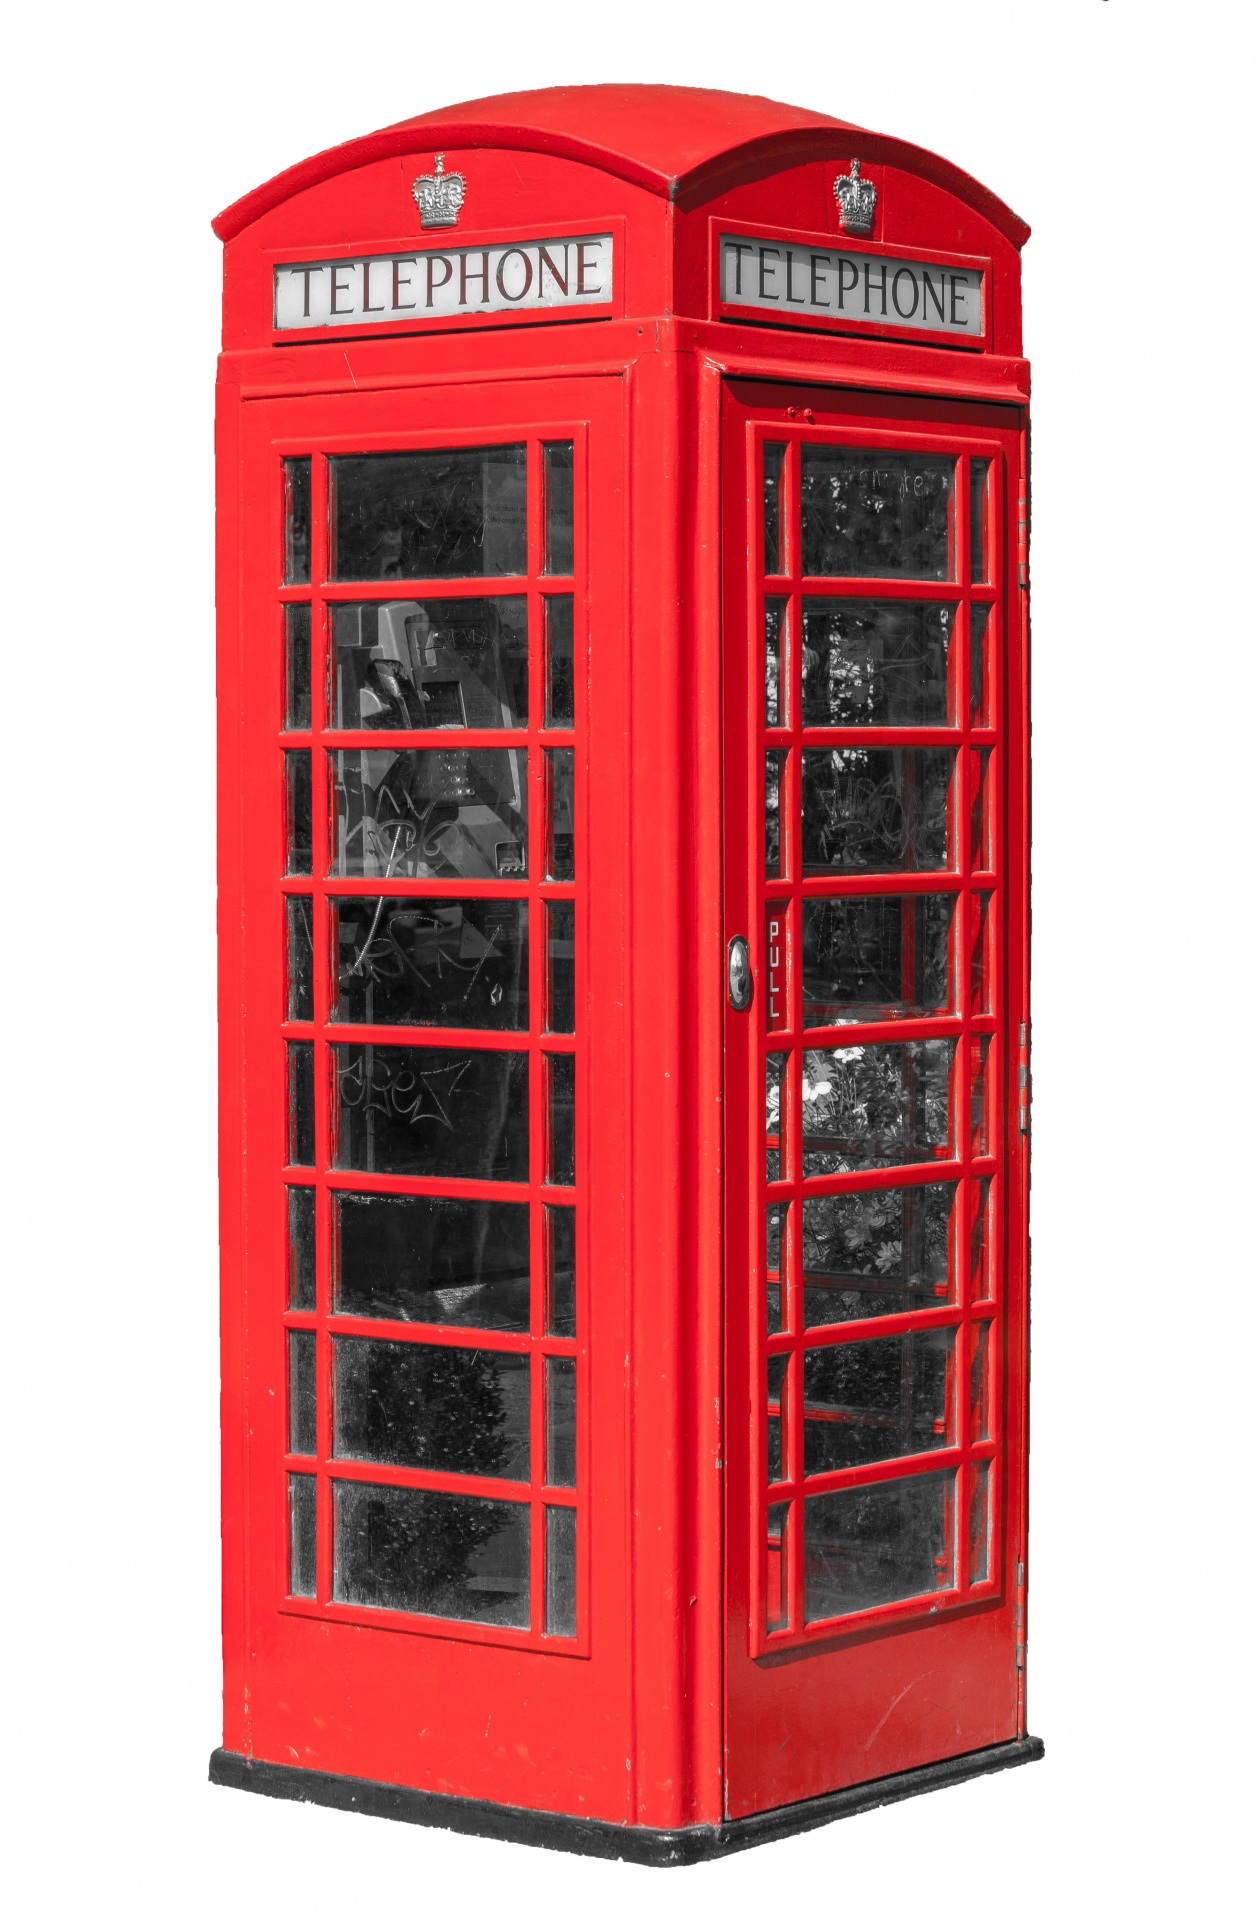 Telephone Booth clipart telephone box Domain Telephone Public Pictures Red